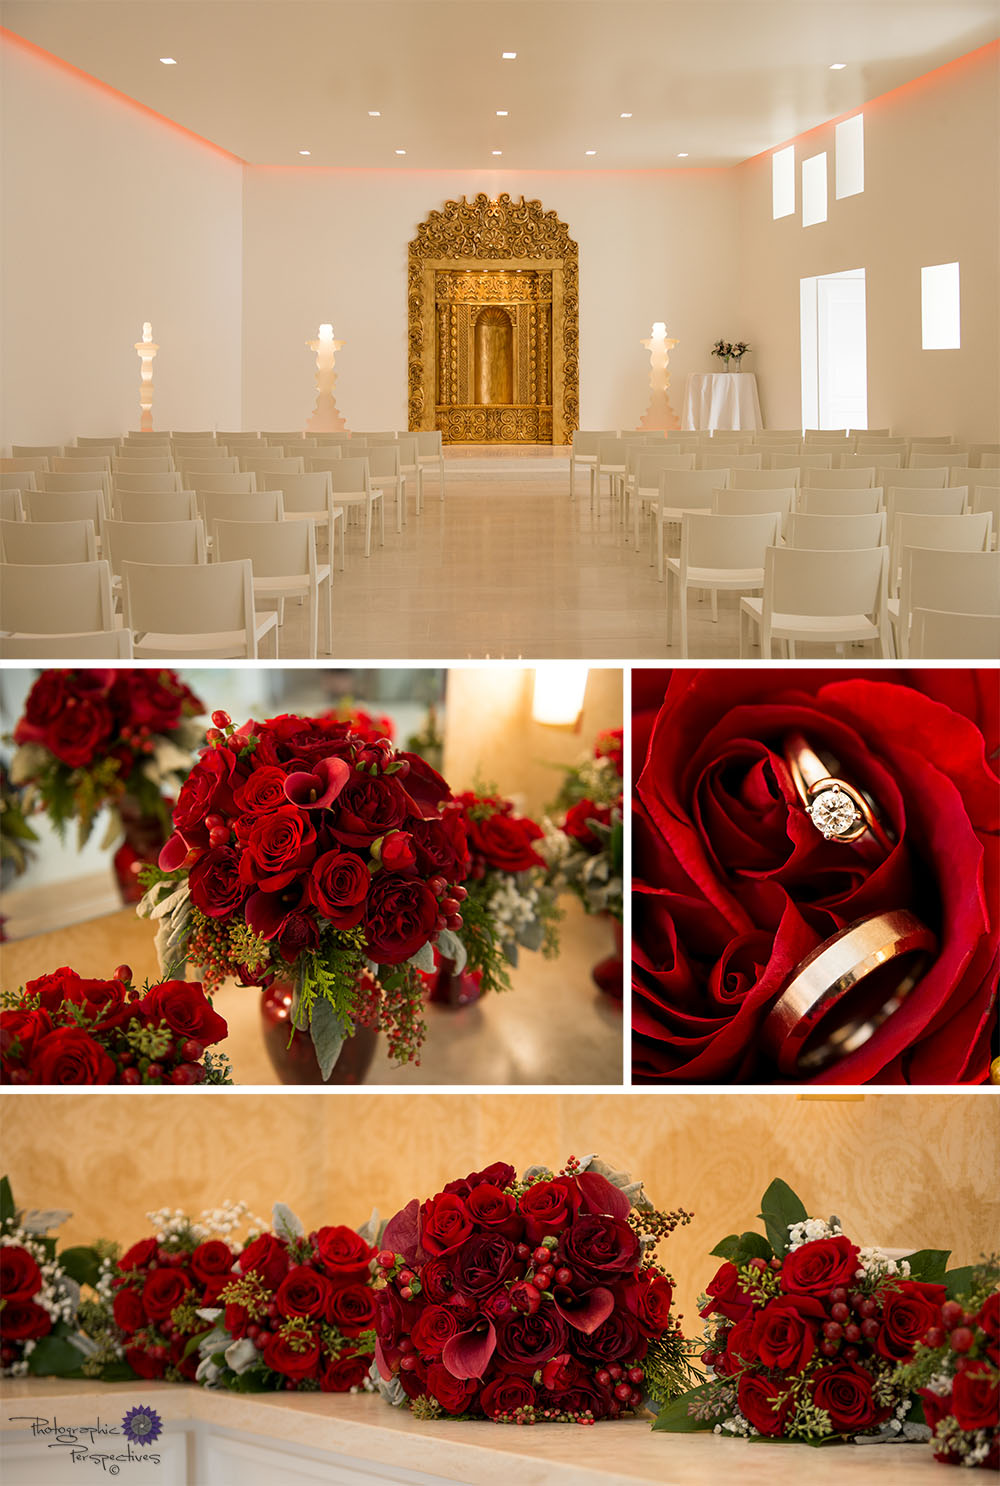 Red Rose wedding at the Eldorado Hotel in Santa Fe, New Mexico.